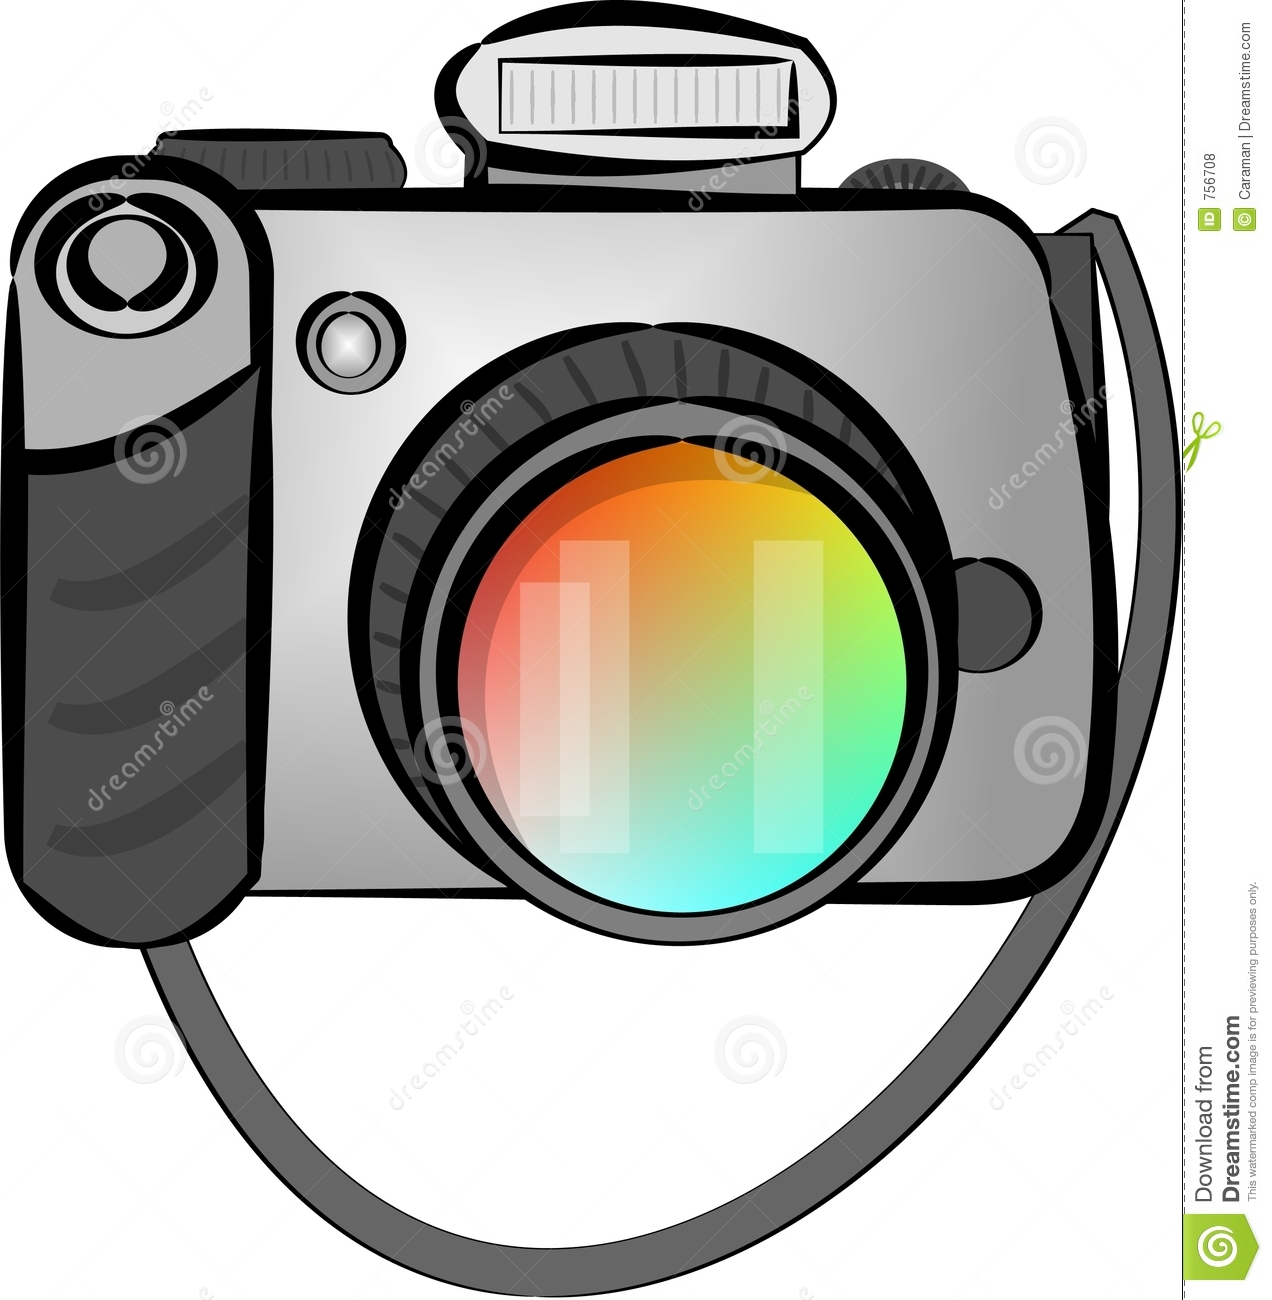 Flash clipart cartoon camera Images camera%20flash%20illustration Flash Clipart Free